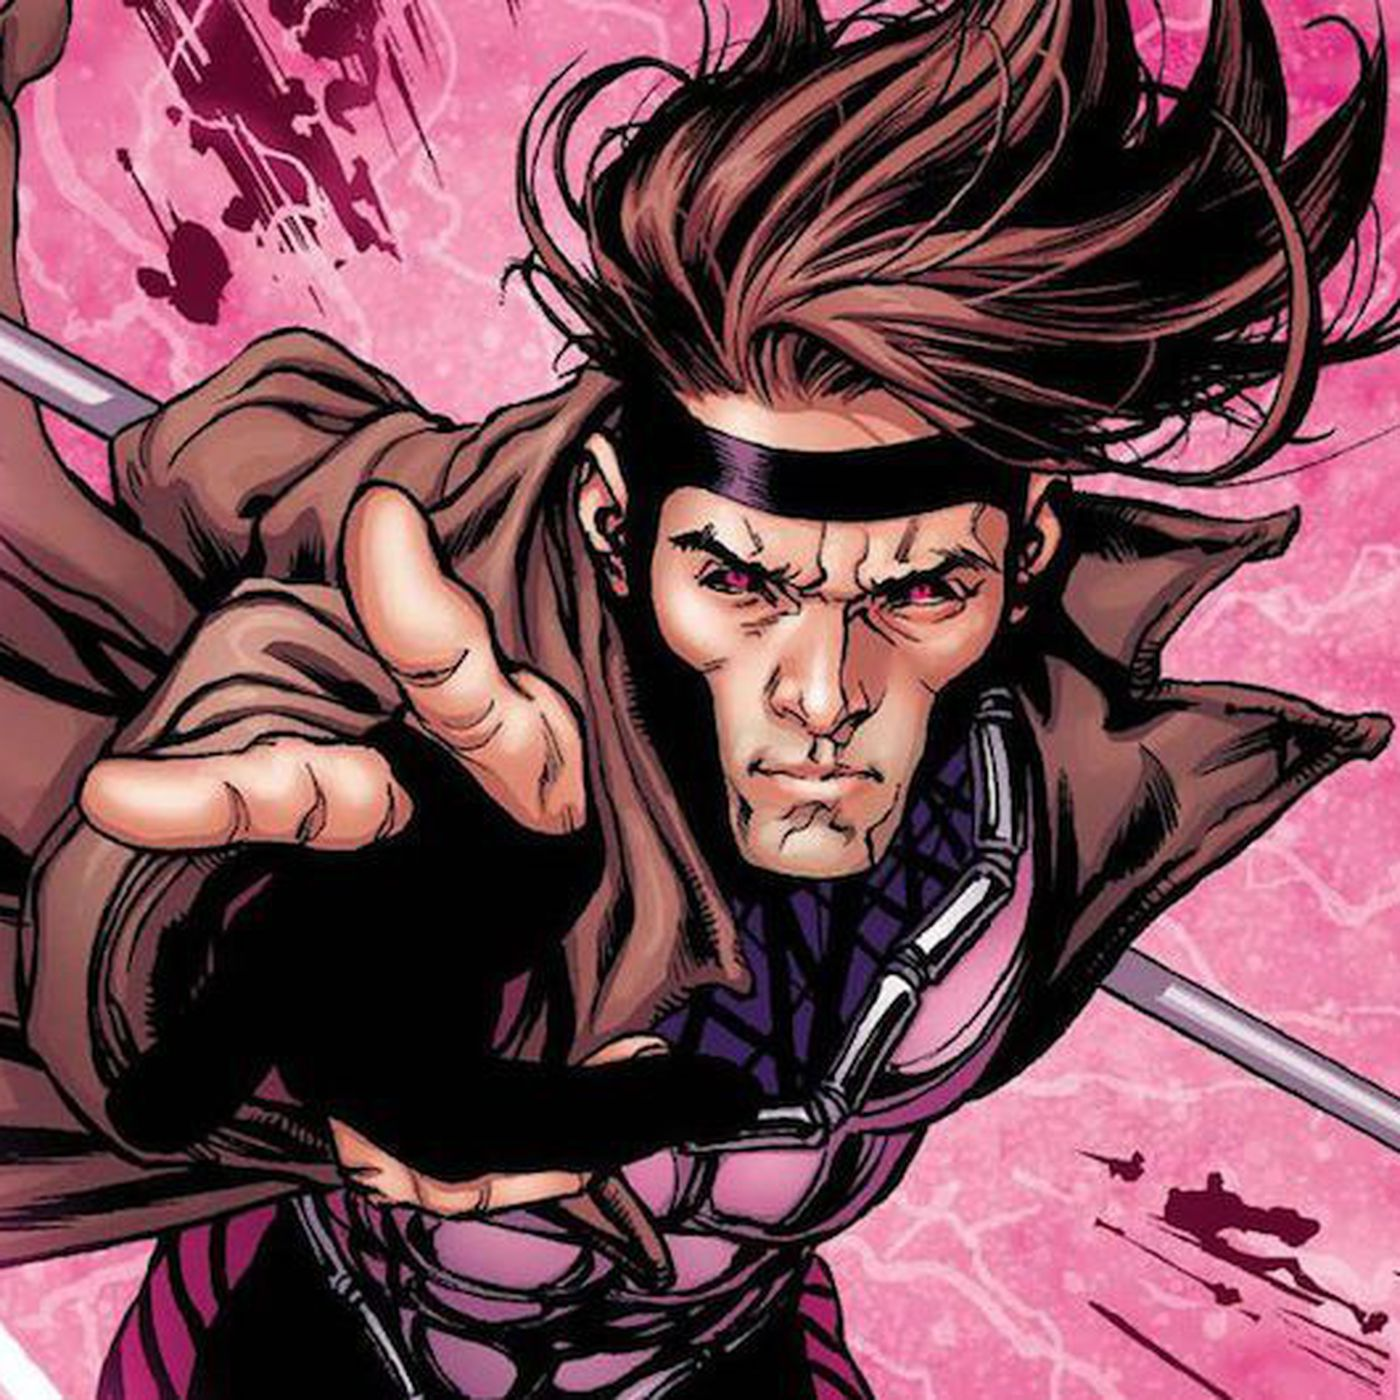 Disney's film slate strongly hints that Gambit is never getting made - The Verge